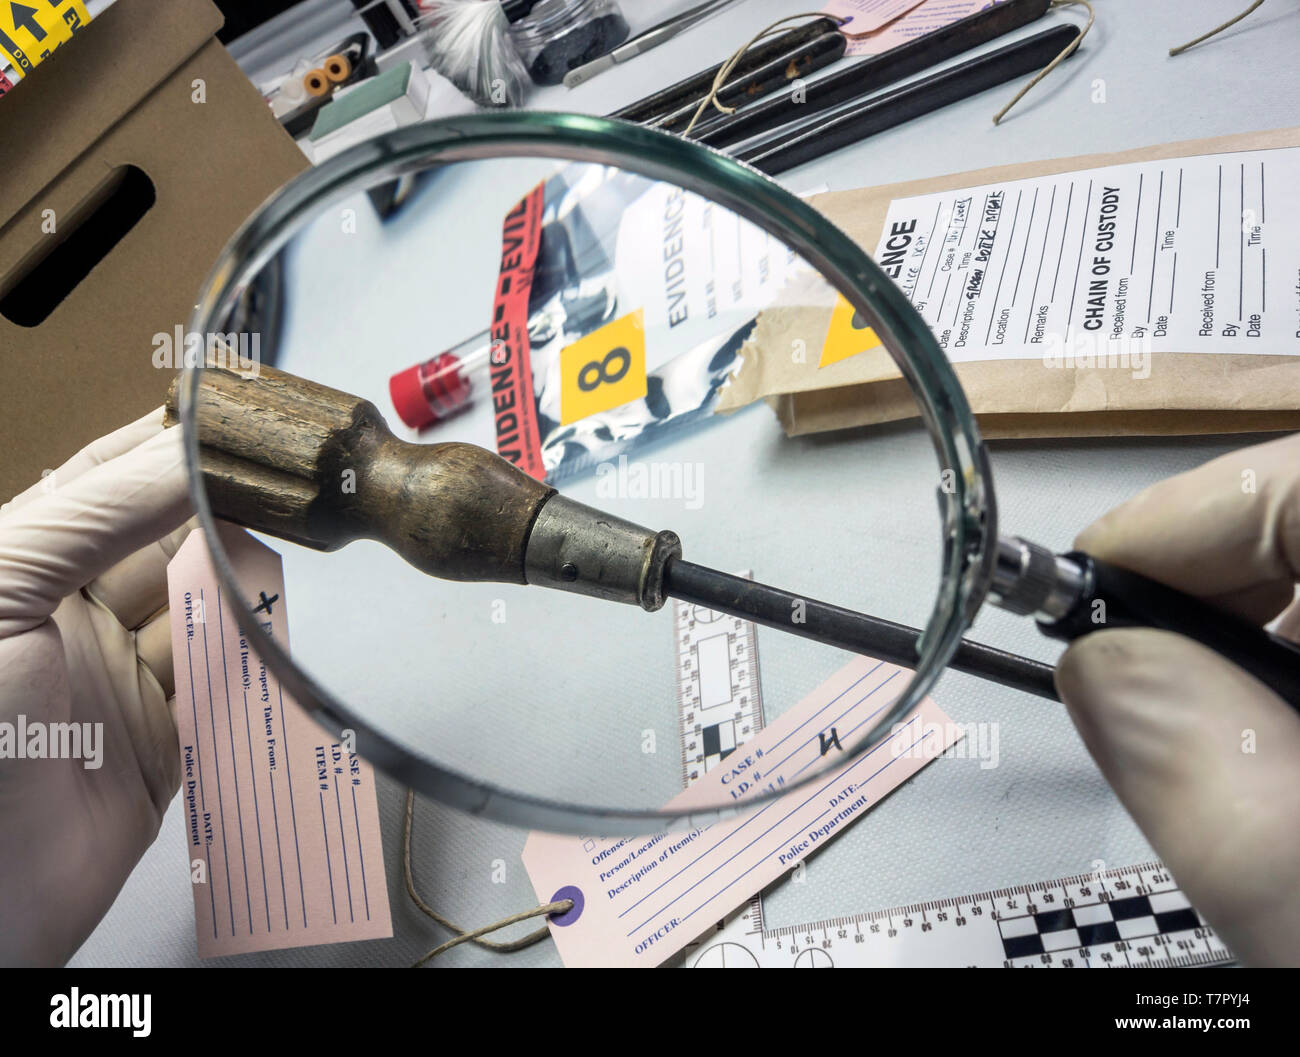 Expert Police Examines With Magnifying Glass A Screwdriver In Laboratory Forensic Equipment Conceptual Image Stock Photo Alamy